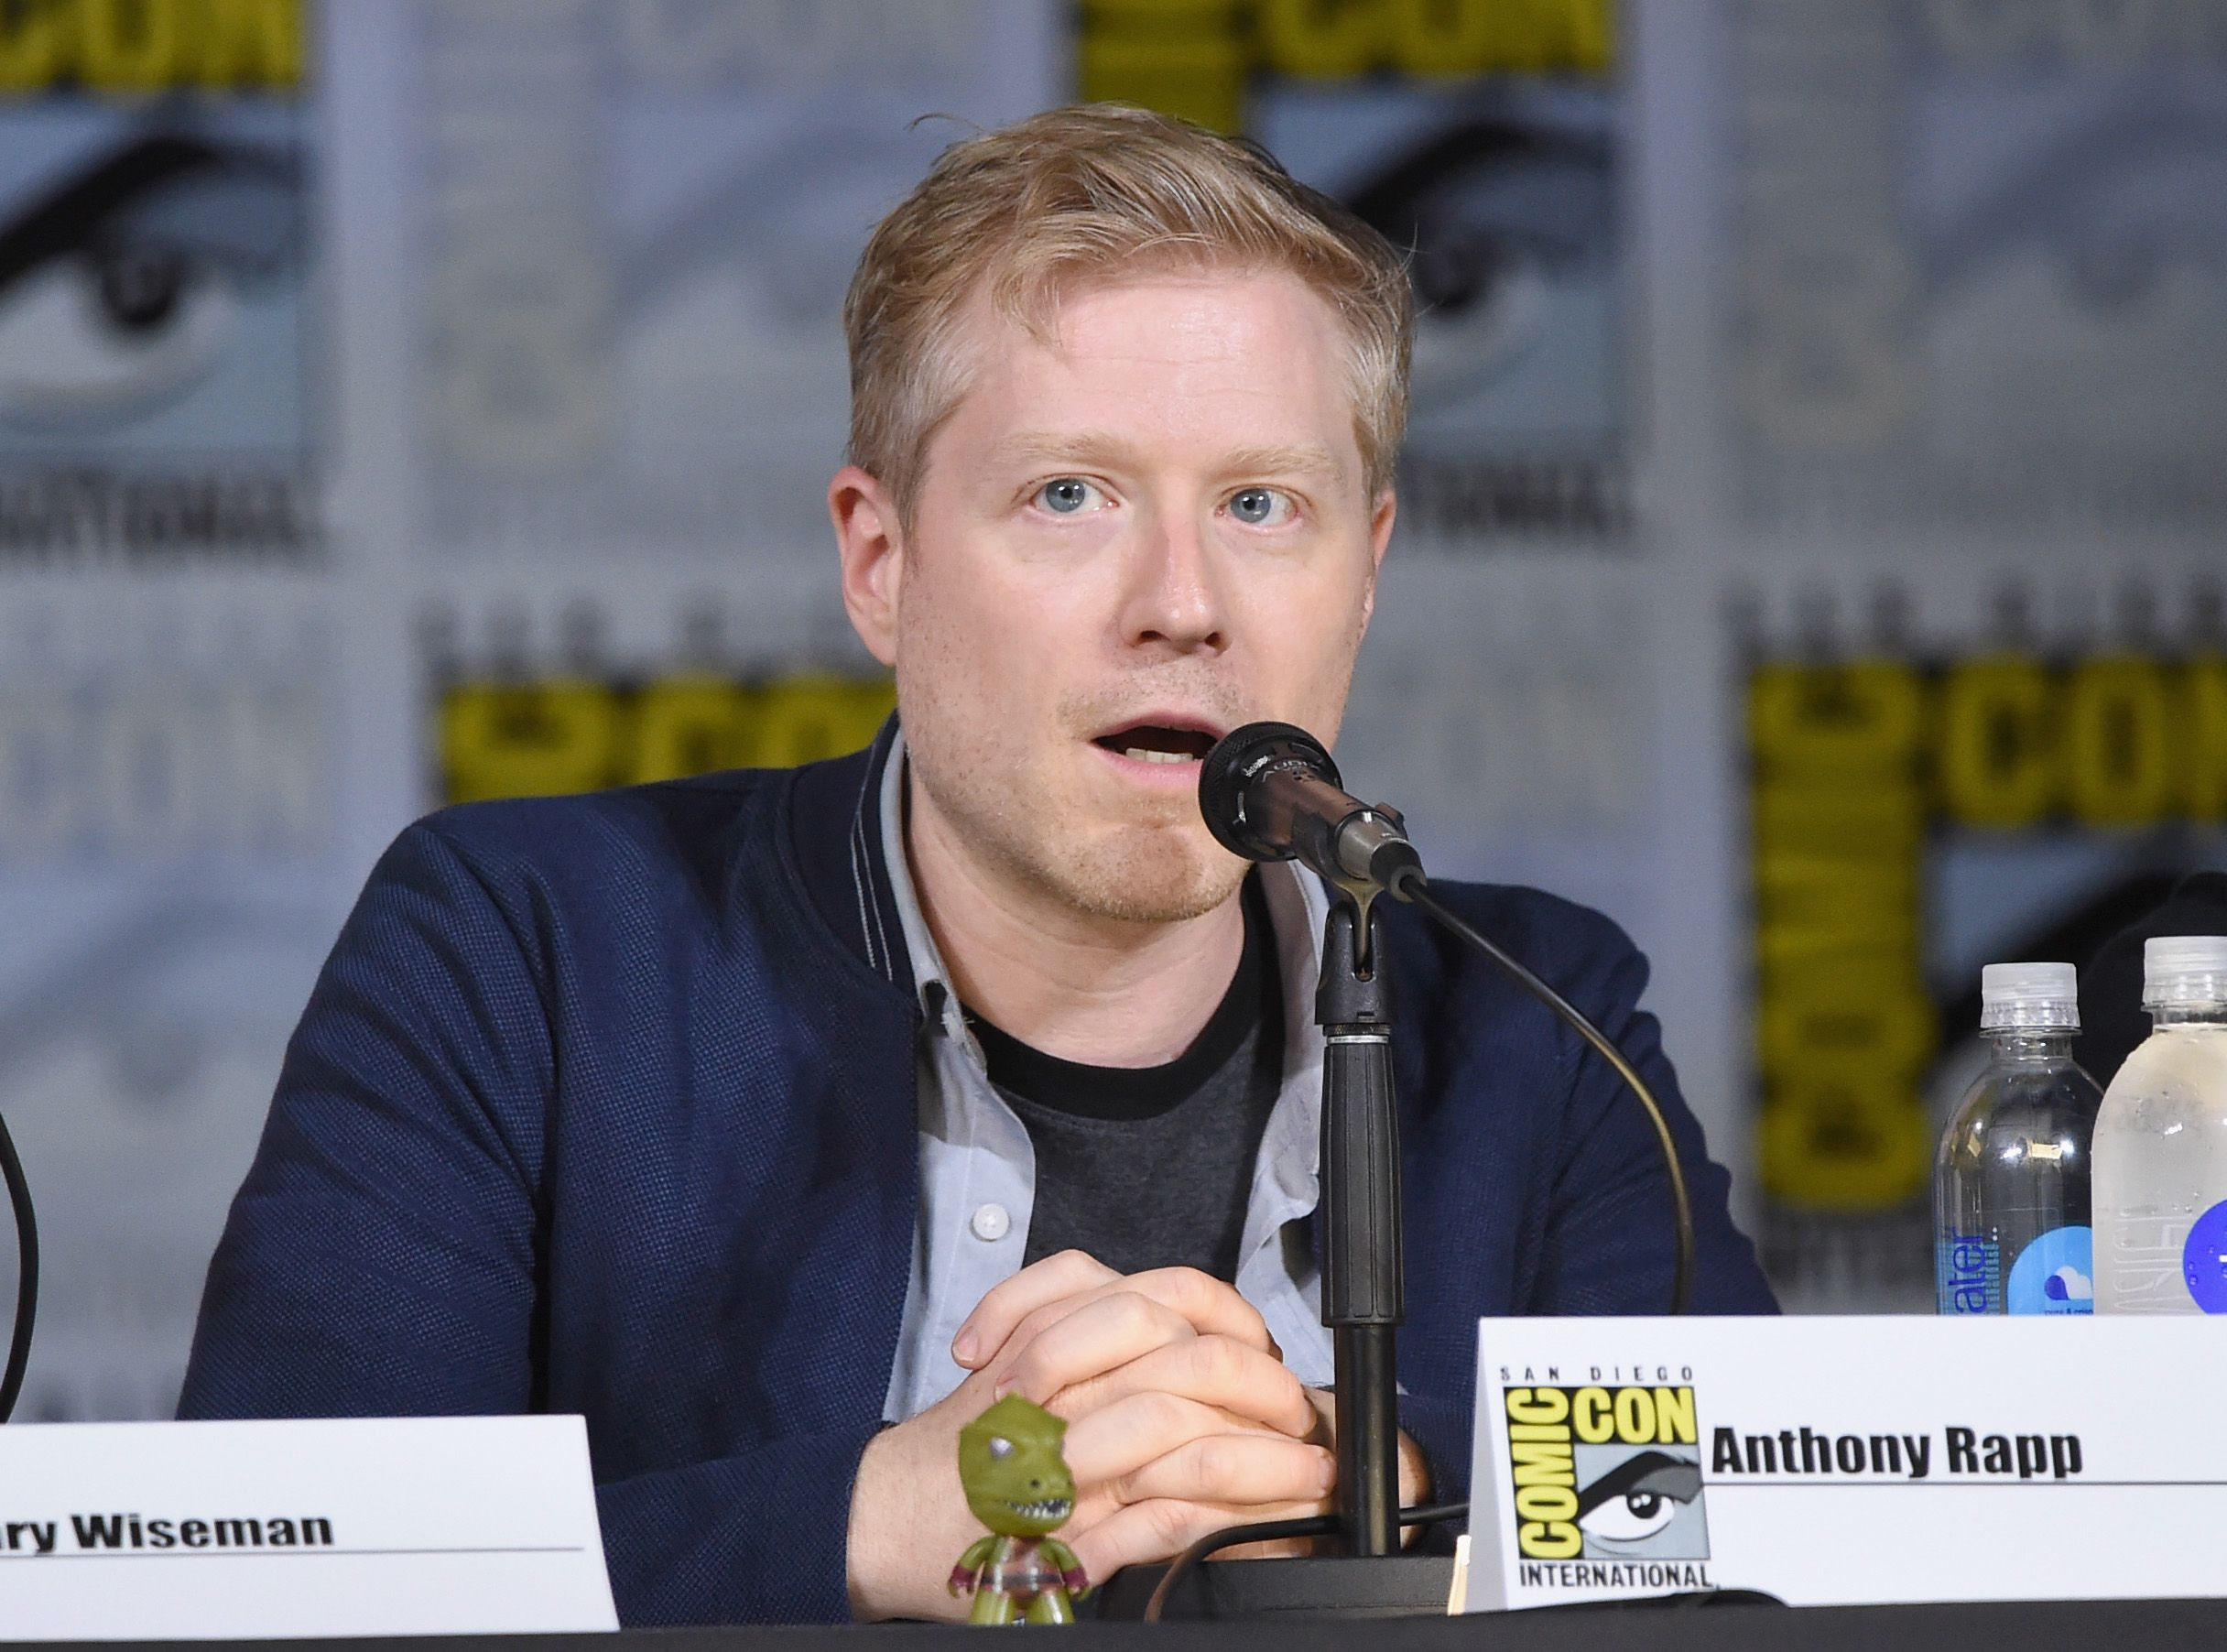 Anthony Rapp in an interview